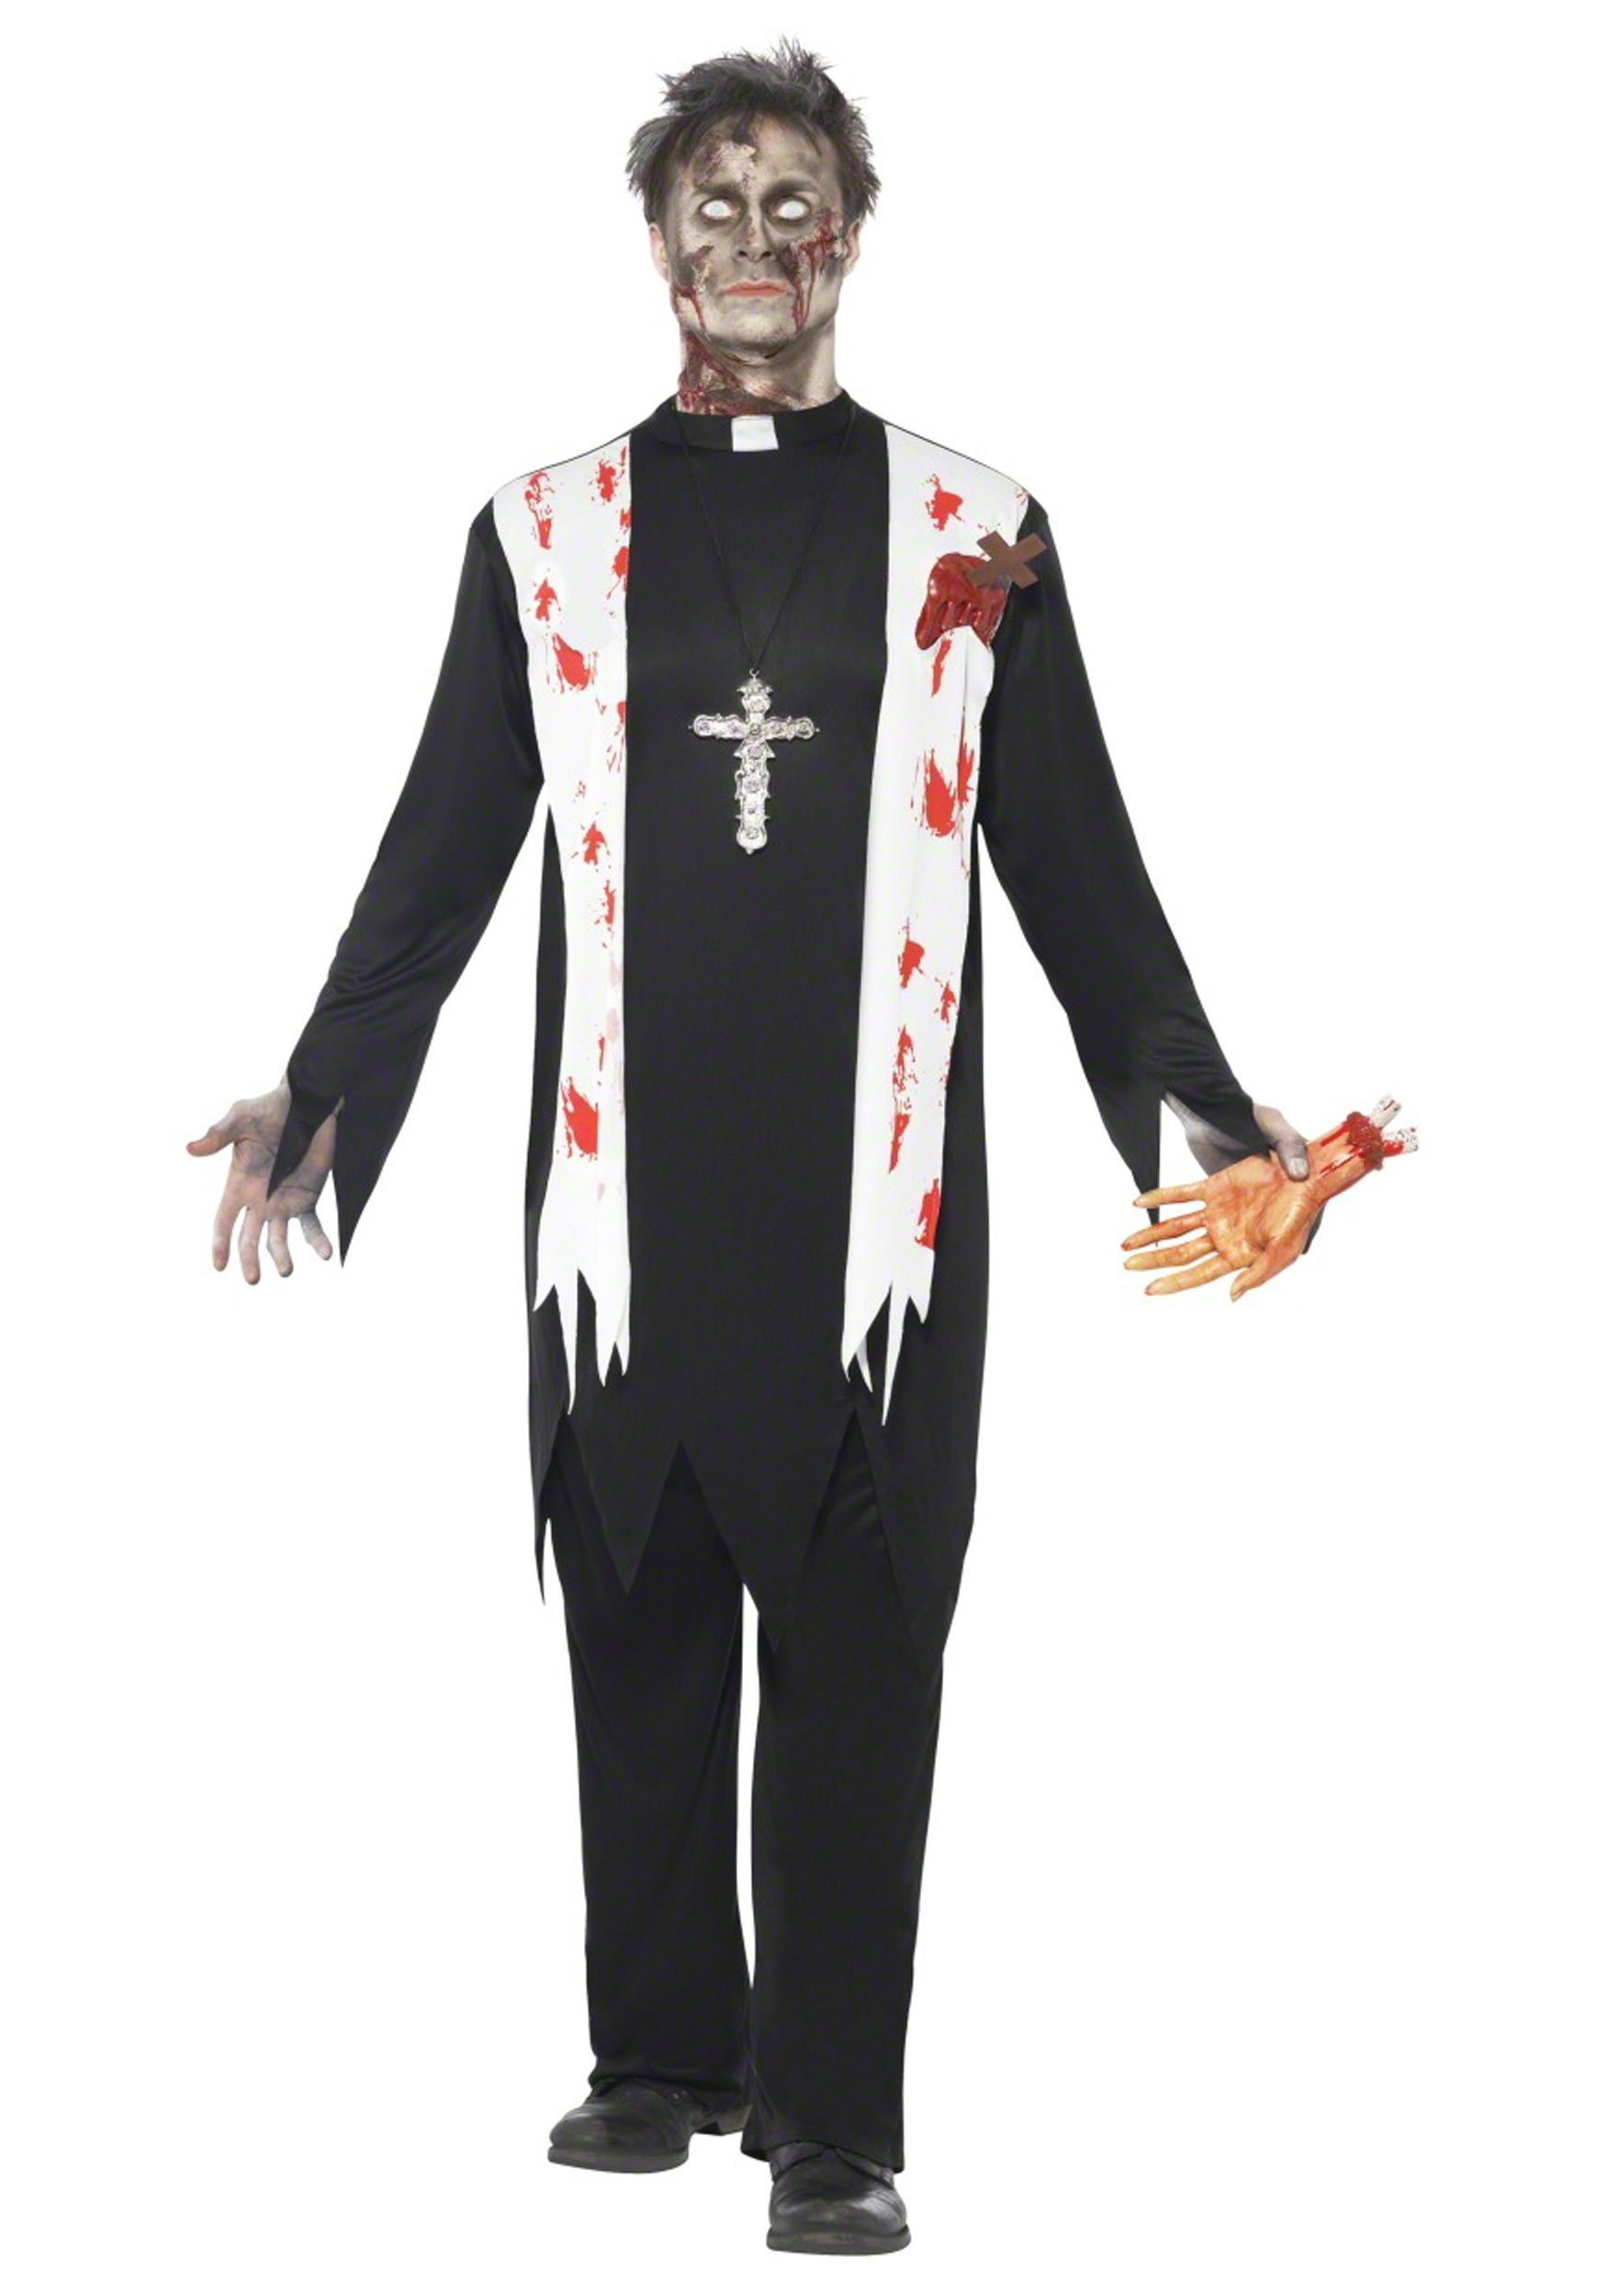 Halloween Costumes For Men Scary, Halloween Costume Ideas